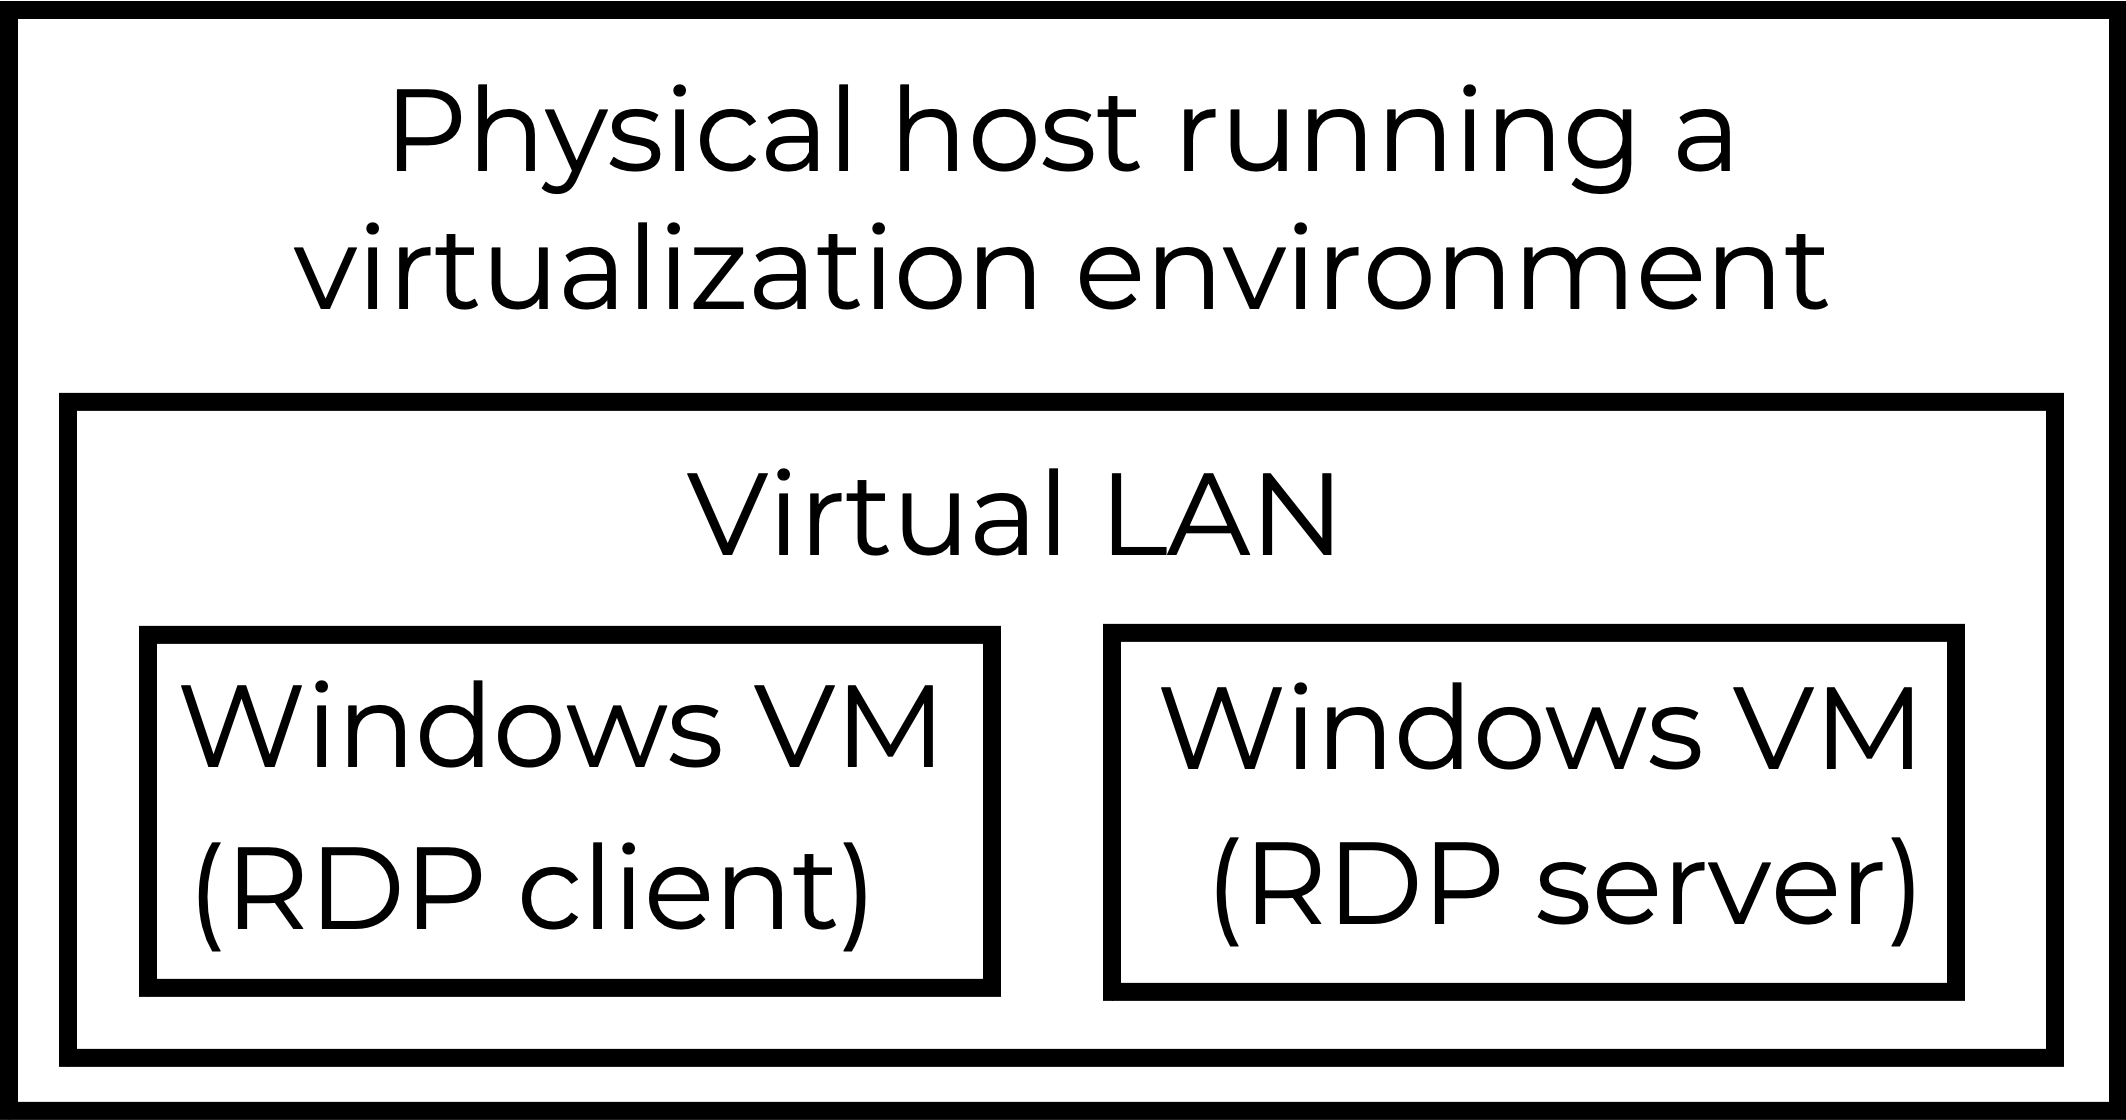 The lab setup used for this tutorial on decrypting RDP traffic includes a physical host running a virtualization environment, a virtual LAN, a Windows VM acting as an RDP client and a Windows VM acting as an RDP server.